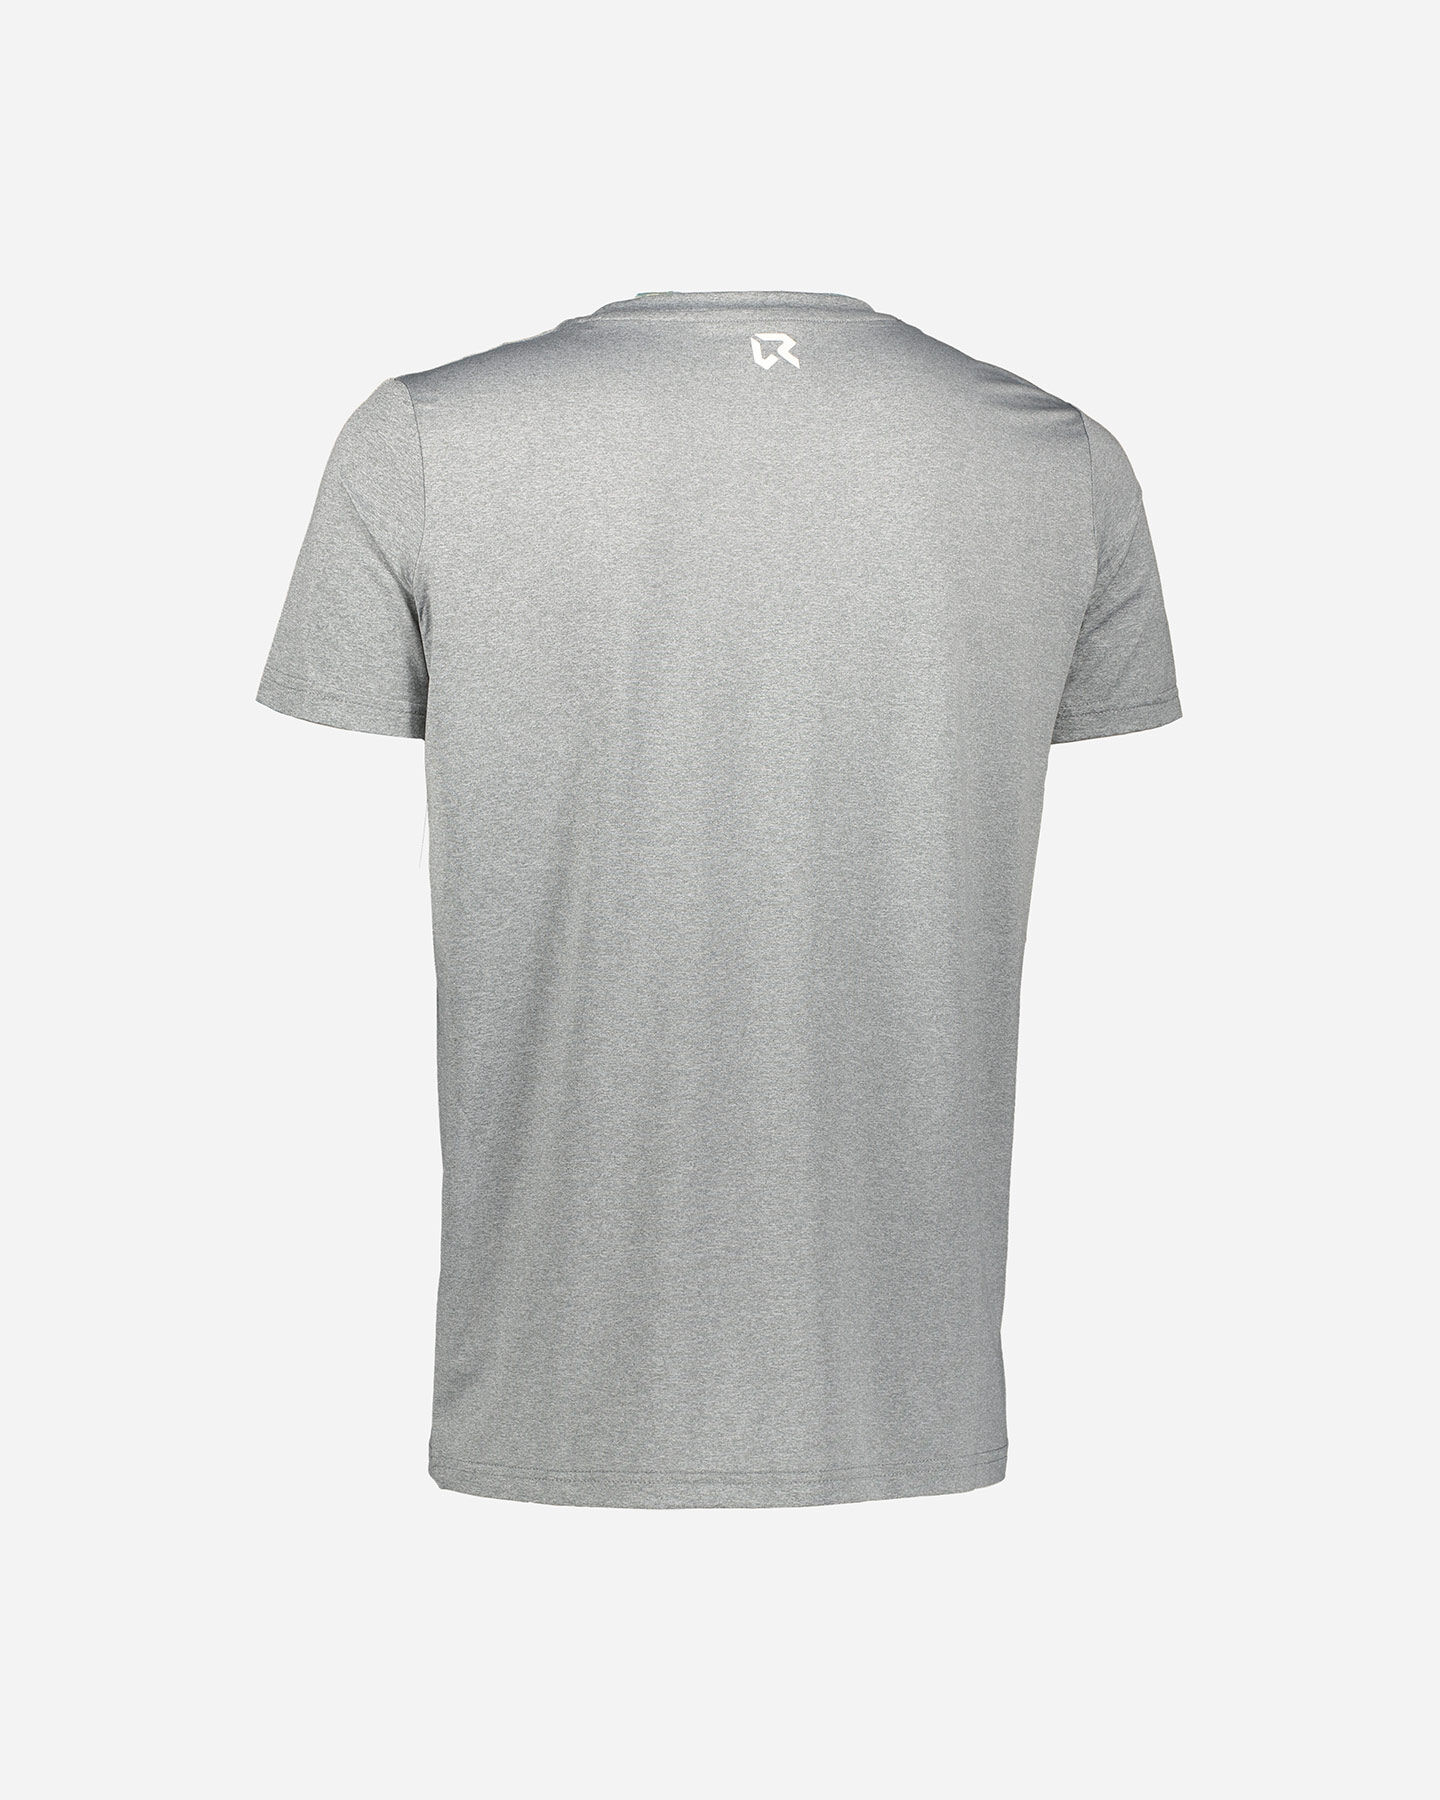 T-Shirt ROCK EXPERIENCE CHANDLER M S4089955 scatto 1